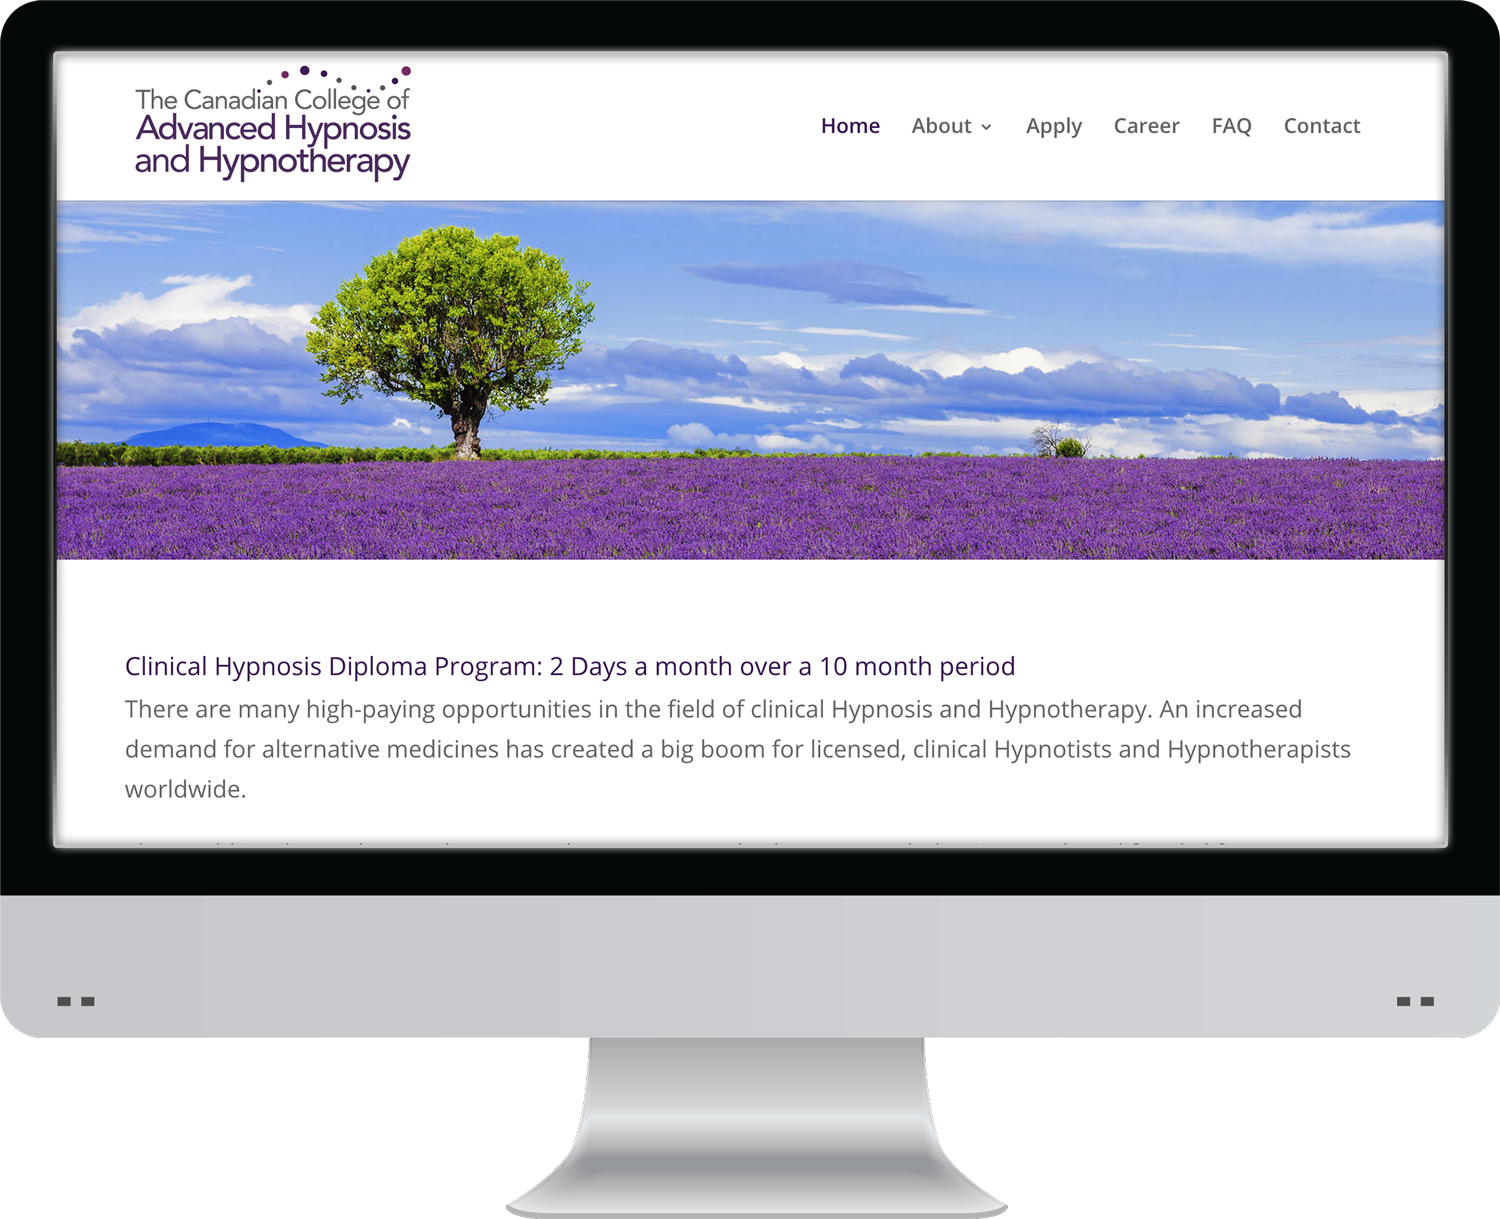 Canadian College Of Advanced Hypnosis And Hypnotherapy